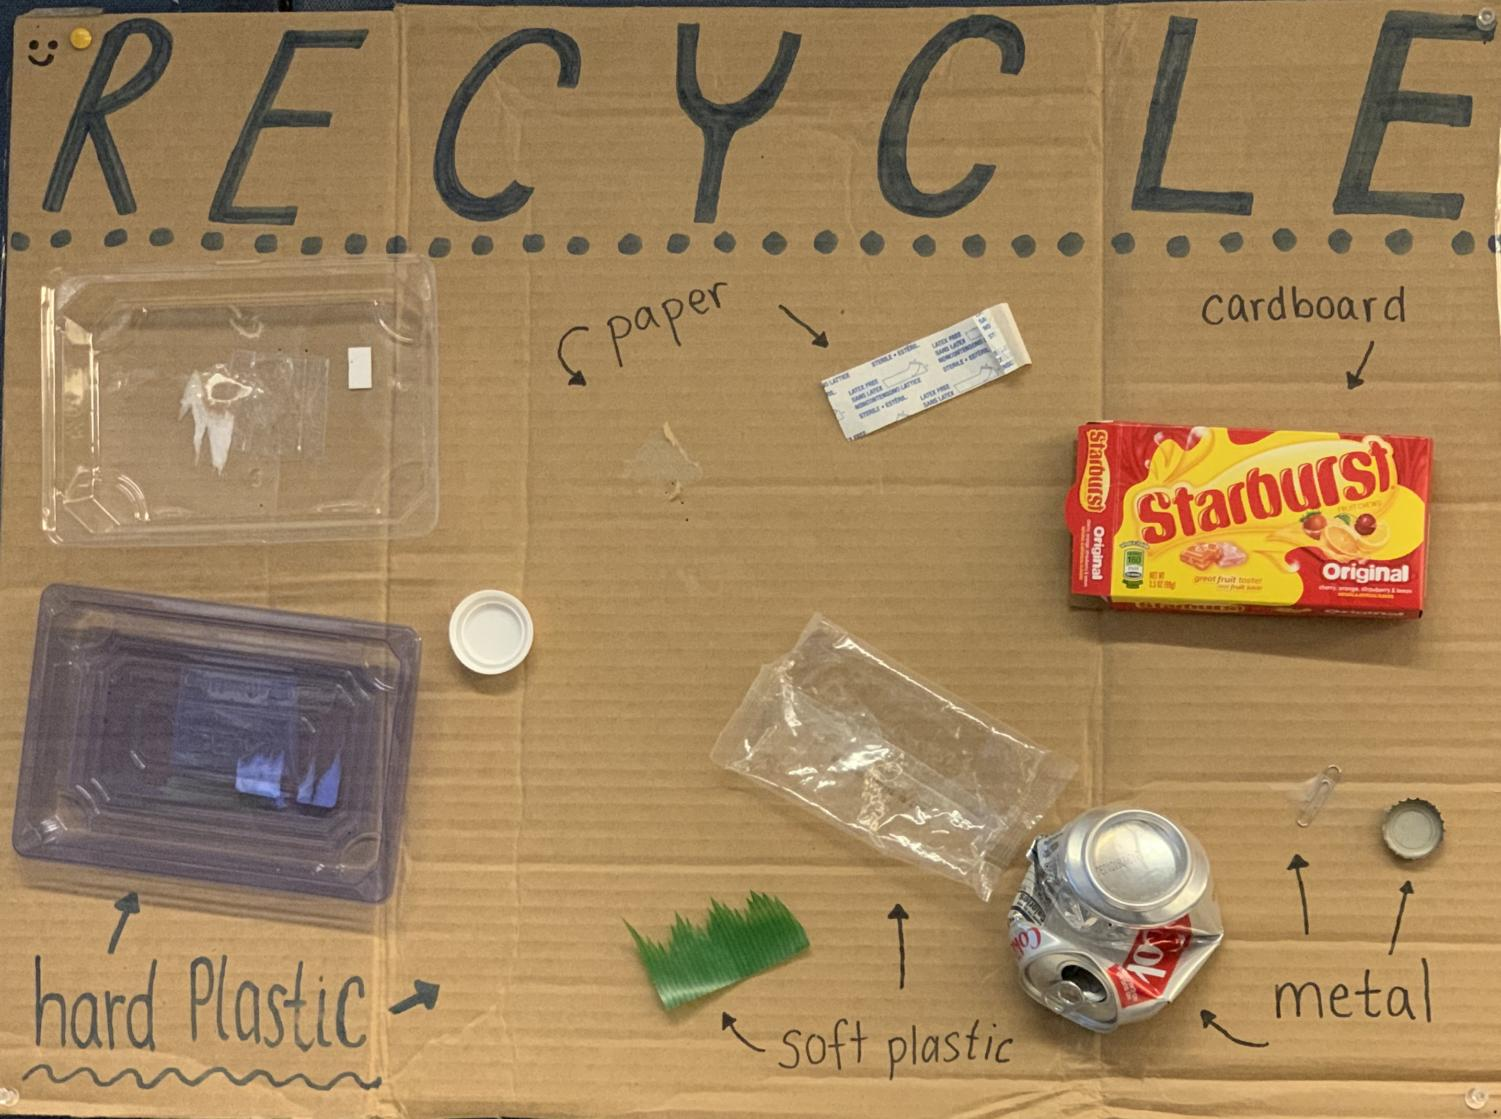 Green Team's poster guide to recycling. Photo Credit: Ellie Lerner